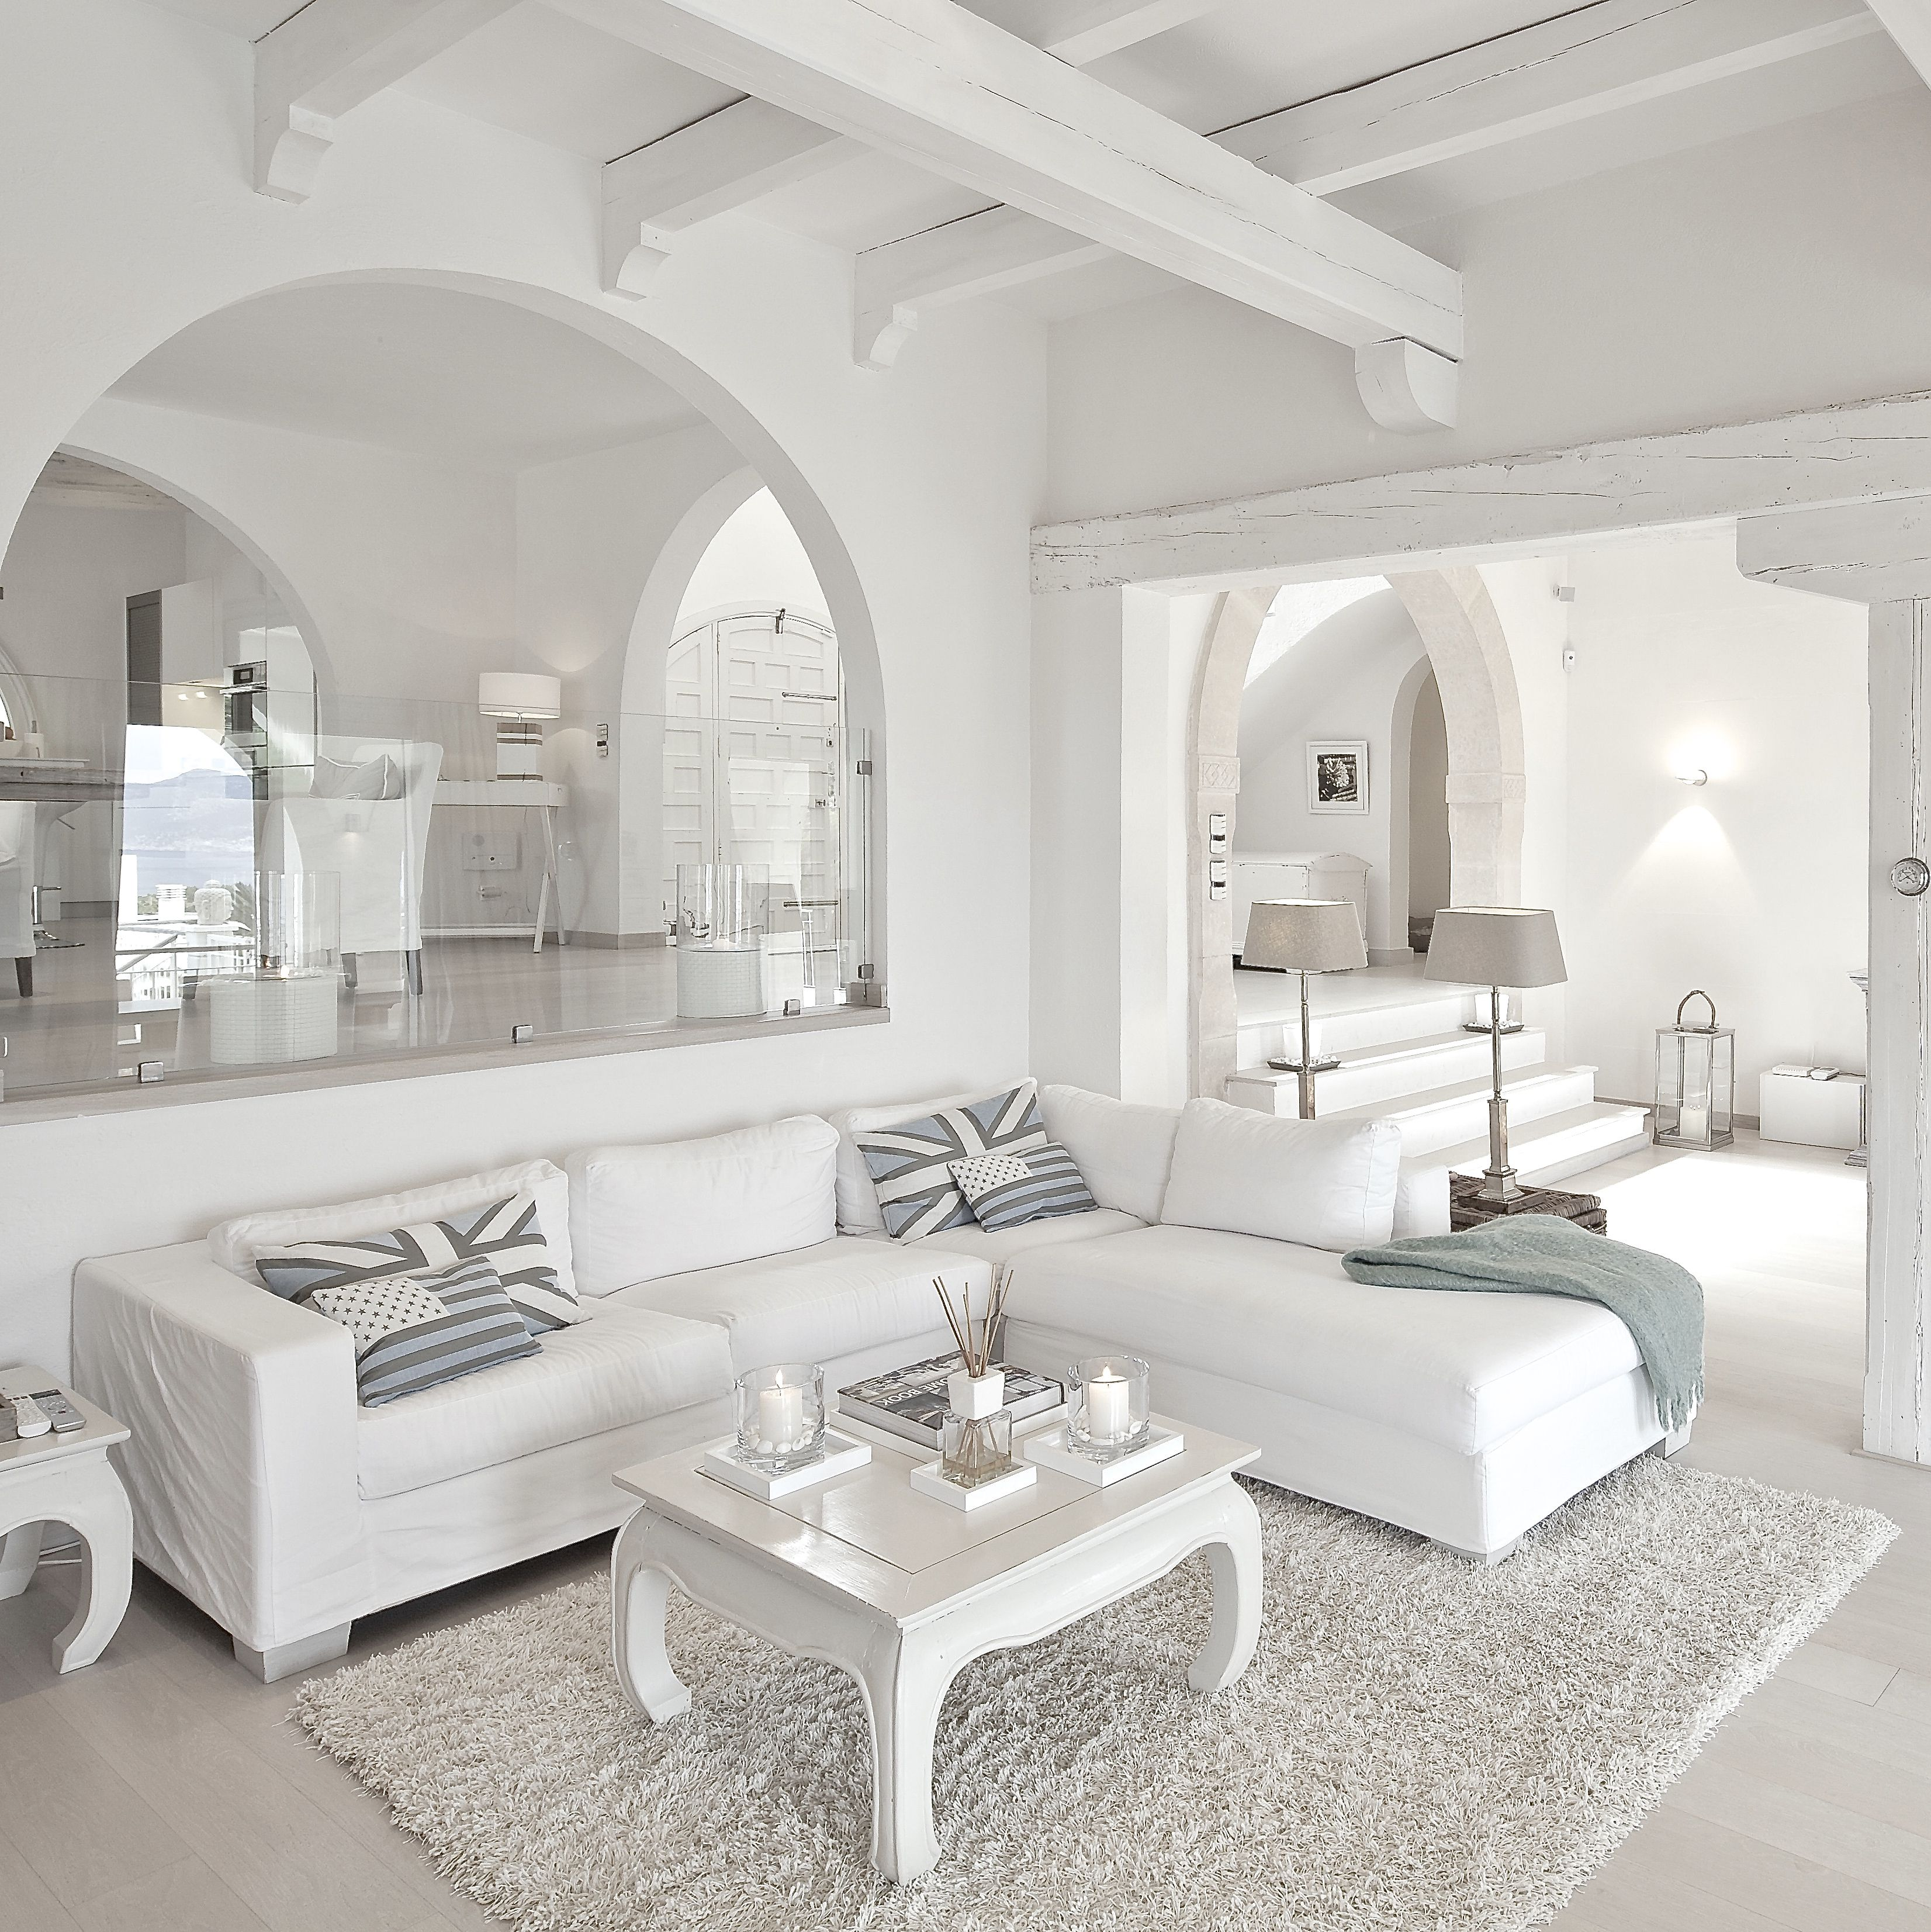 Front Room Interior Ideas: Interior Design: SEAWASHED By Carde Reimerdes Mallorca